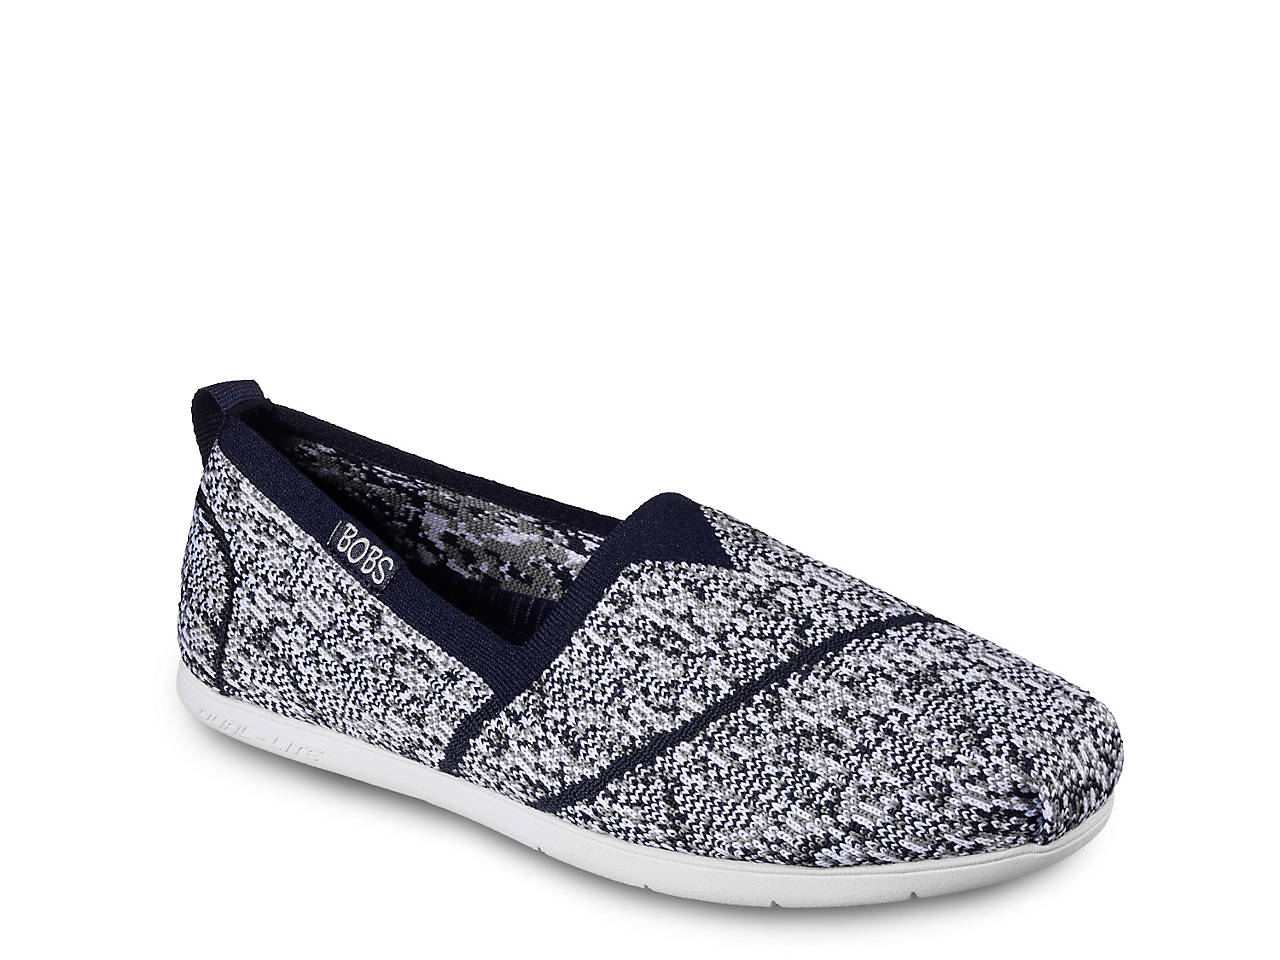 623a1b5d96ab BOBS from Skechers Plush Lite Tailor Made Slip-On Women s Shoes